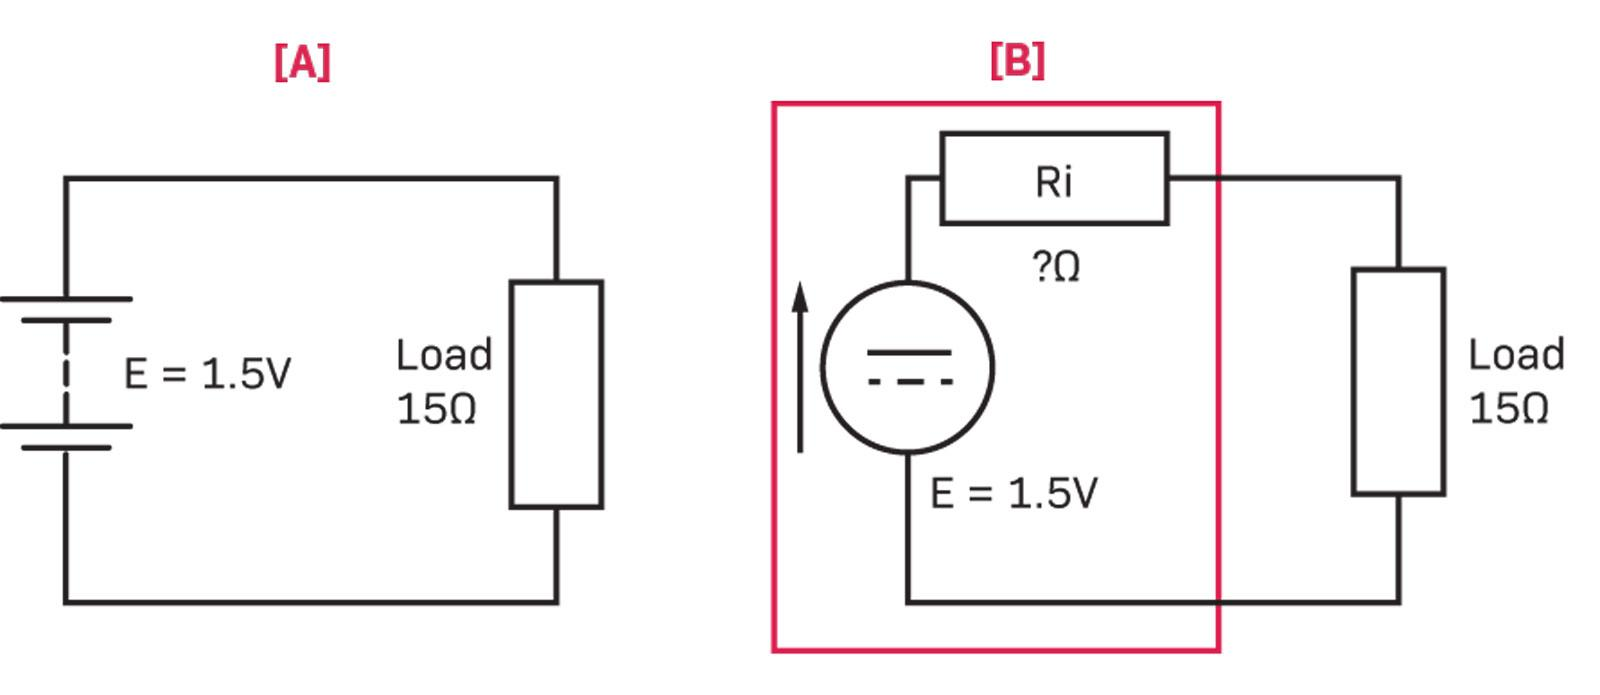 Black Box Circuit Analysis Diyode Magazine Pure Series Formula For And Parallel Connected Resistor Fig 2a 2b